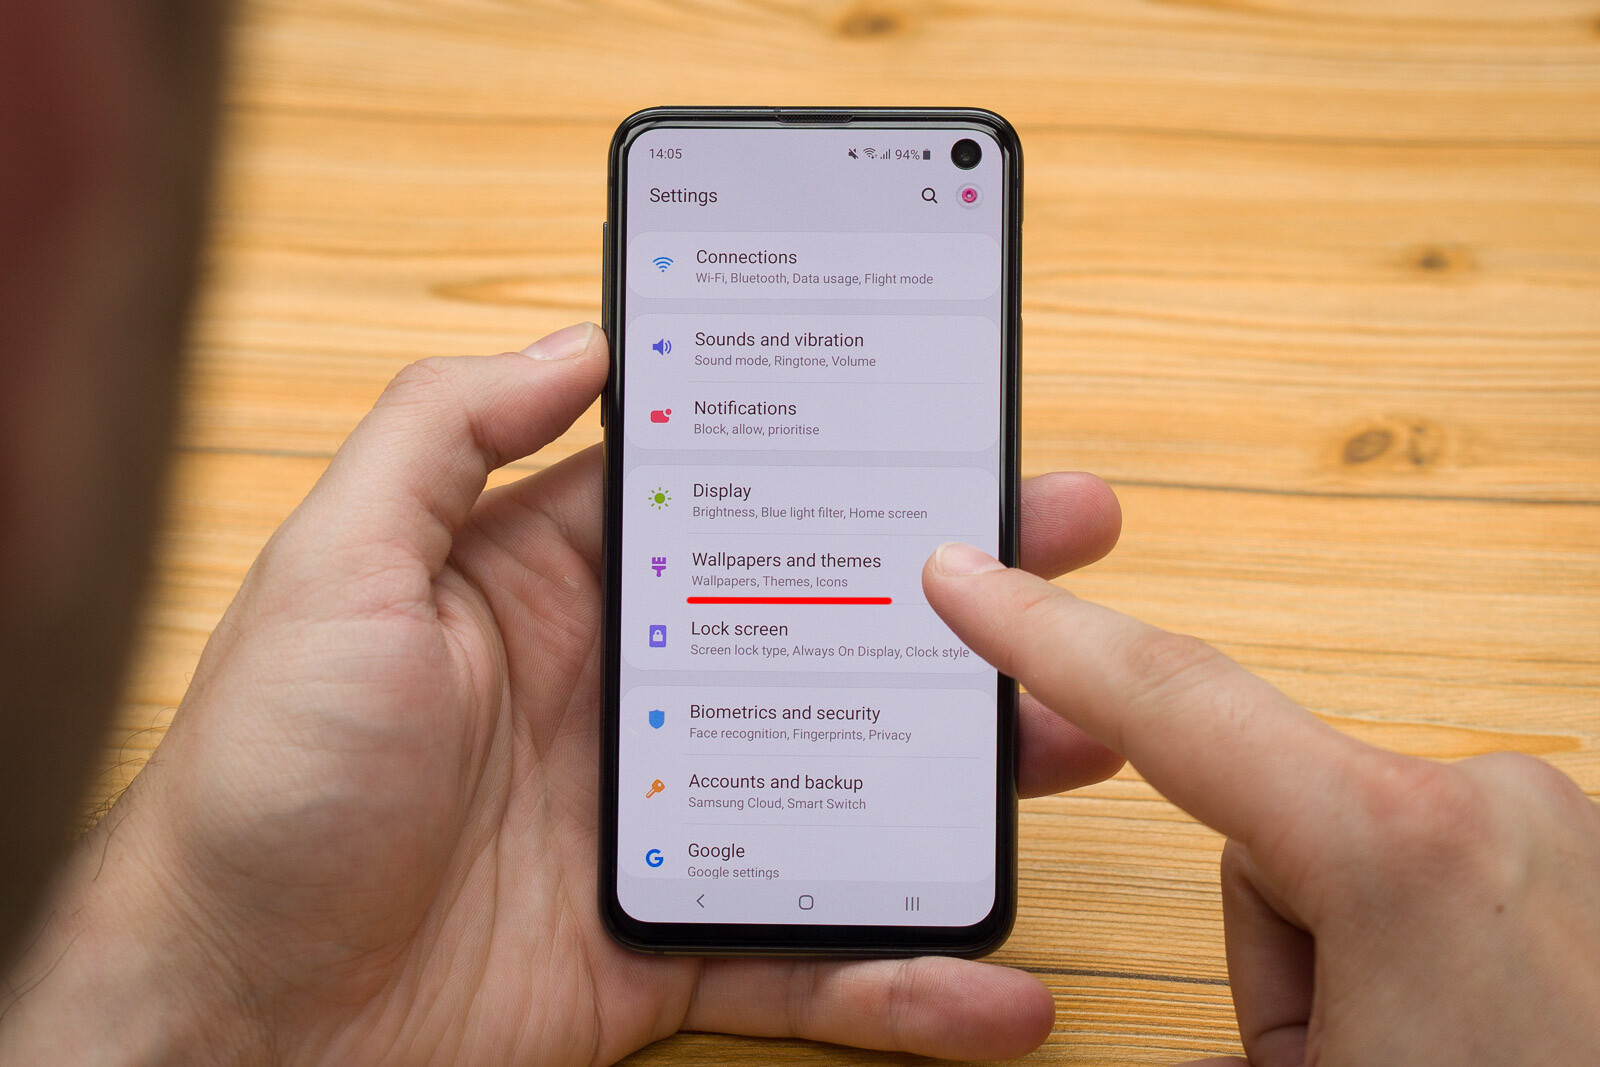 How to set a video lockscreen on the Galaxy S10, S10+, or